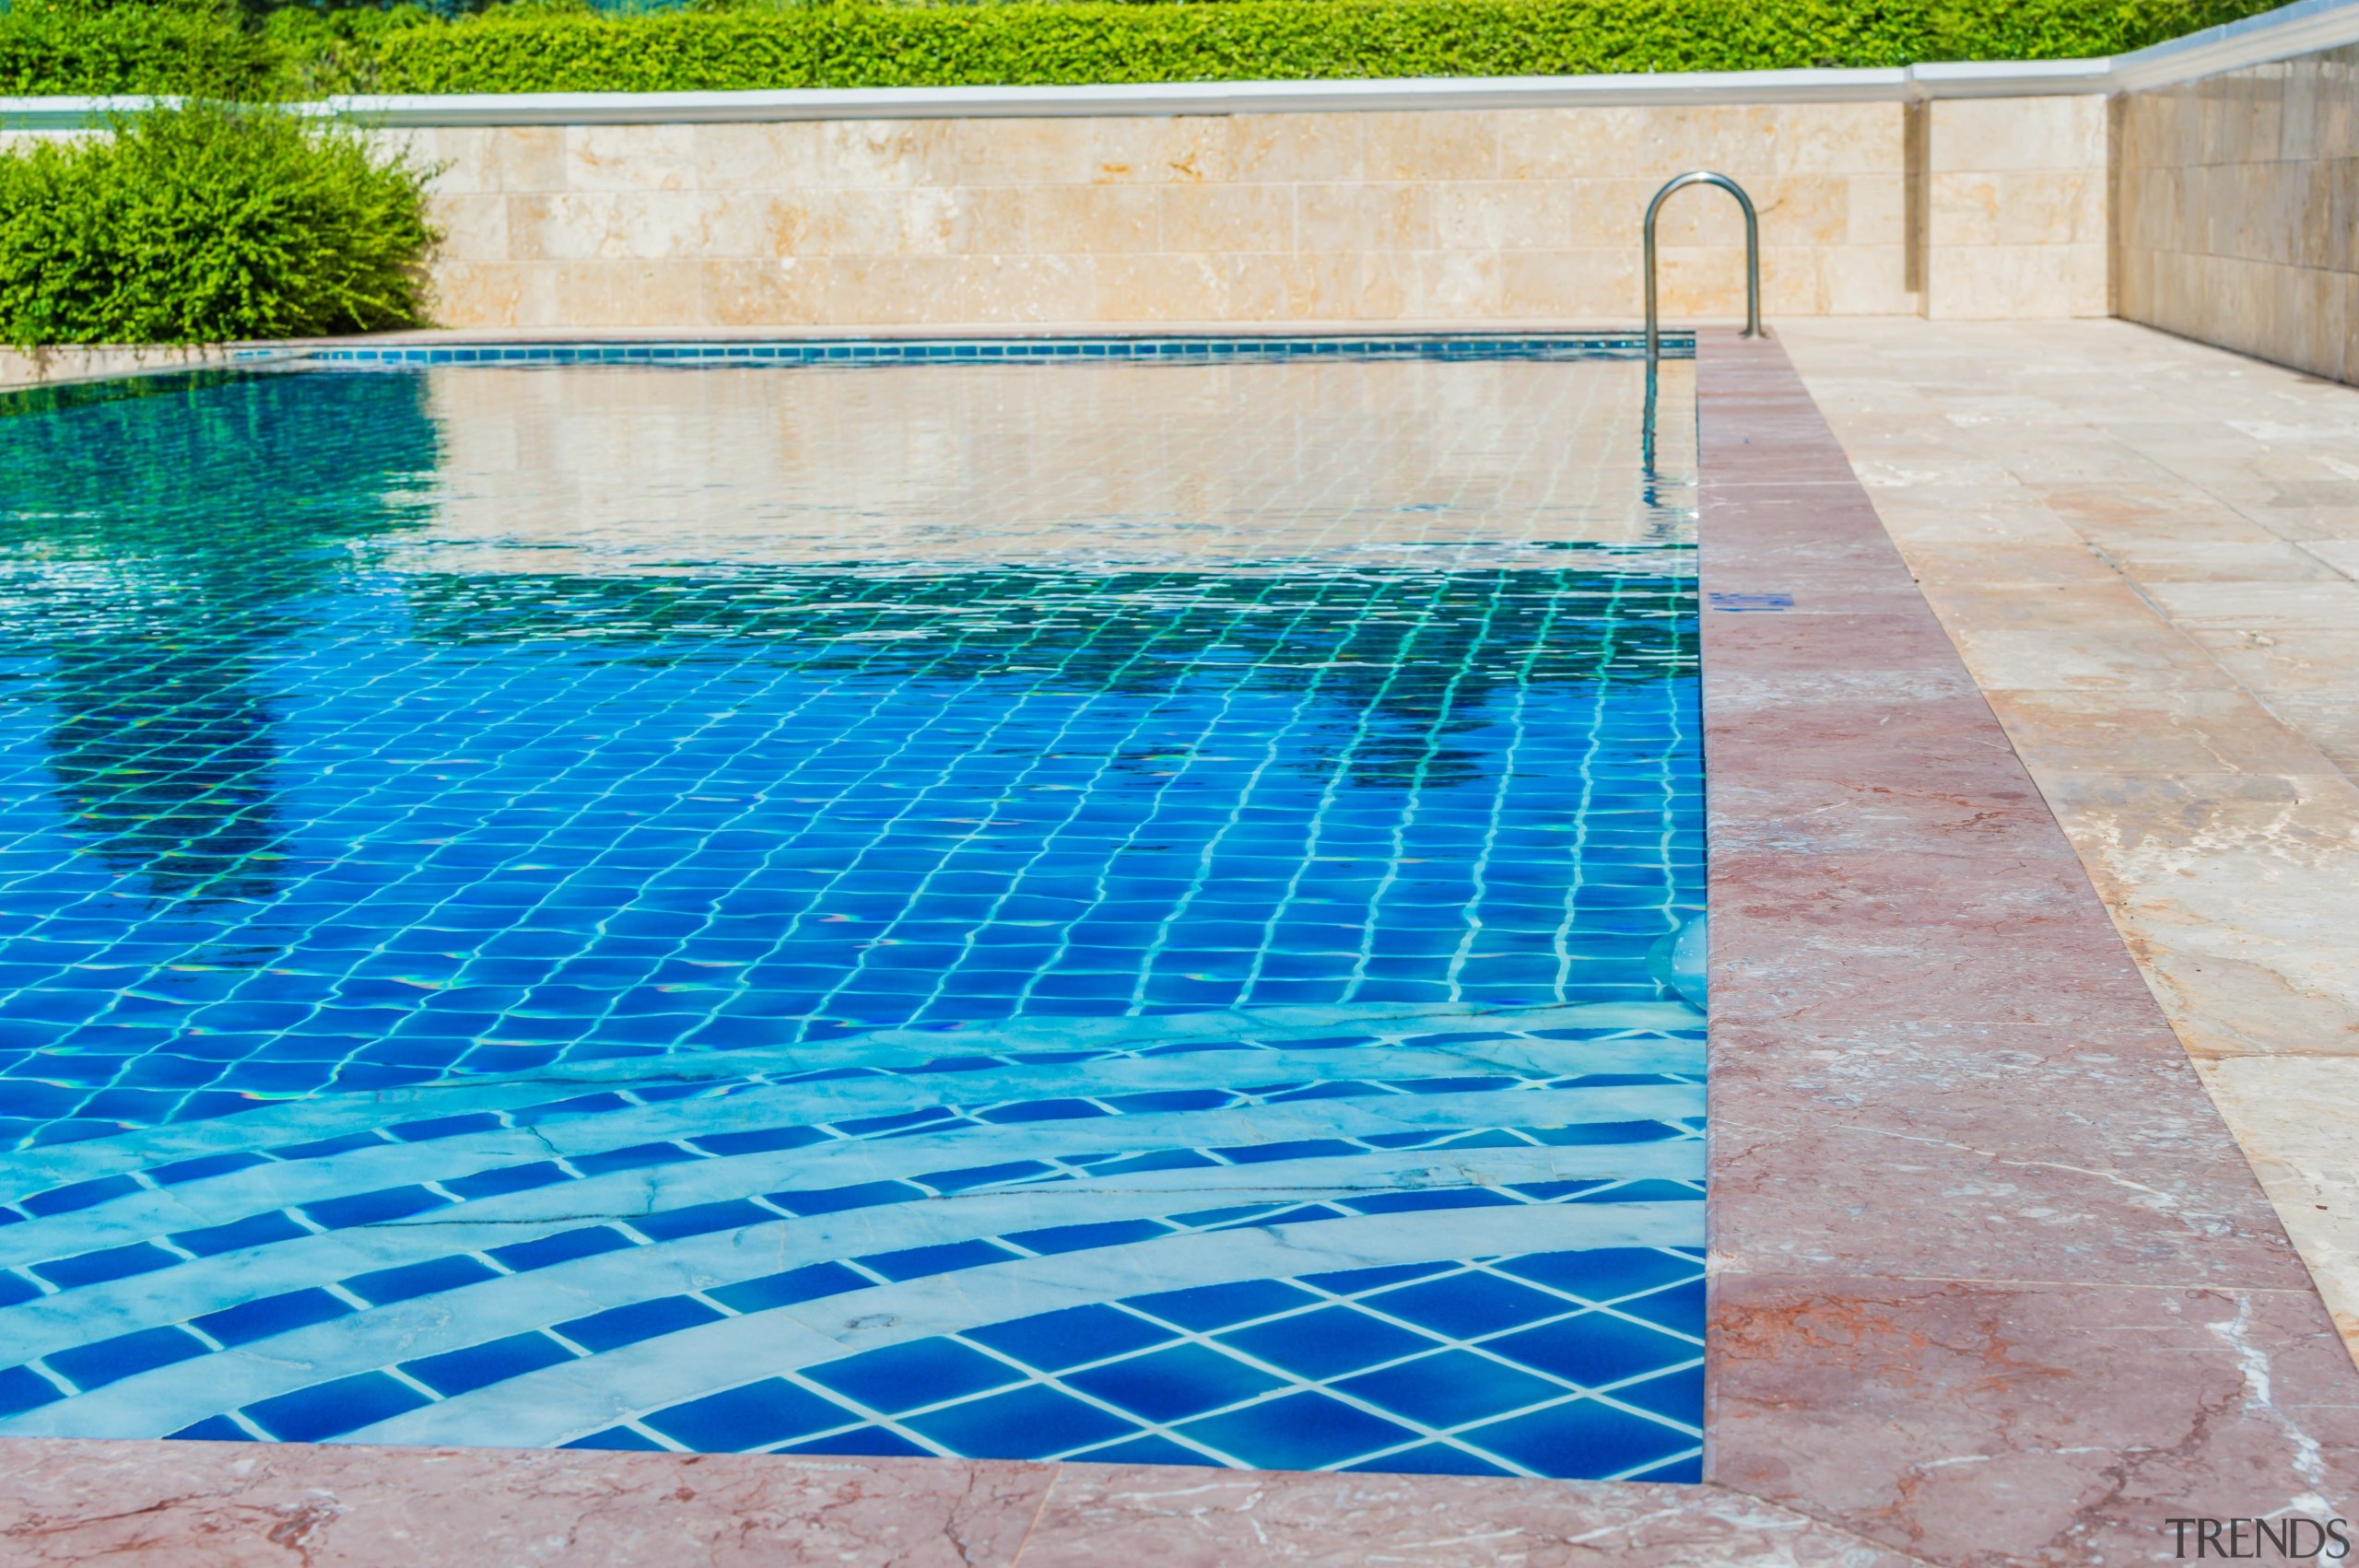 Going with concrete means you've near-unlimited material options aqua, area, composite material, fence, floor, flooring, leisure, leisure centre, net, property, road surface, swimming pool, tile, wall, water, water feature, water resources, gray, teal